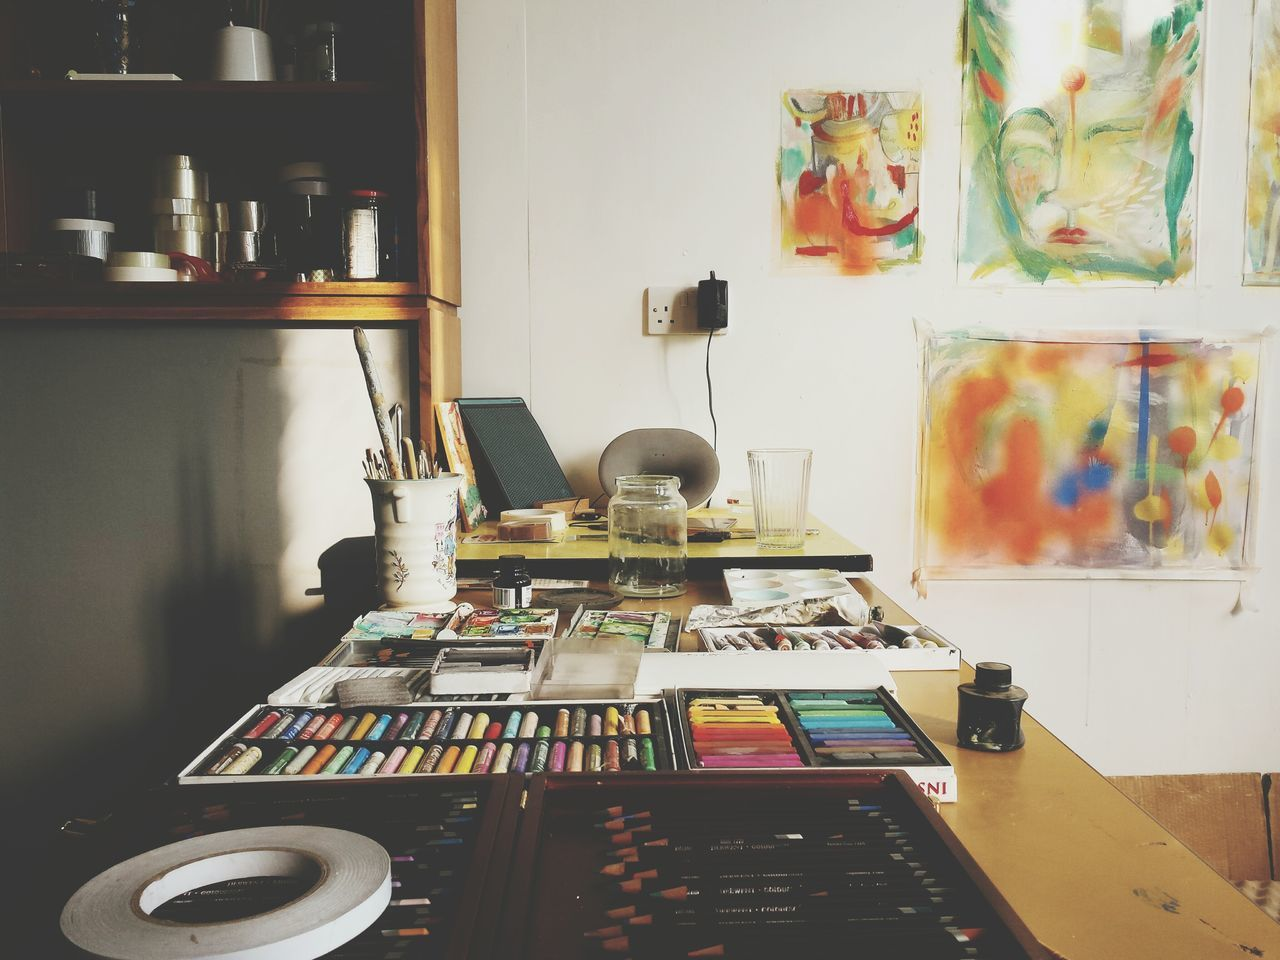 Indoors  No People Day Tranquility Music Domestic Room Studio Studio Shot Studio Photography Studiophotography StudioLife Interior Design Retro Art Painting Artistic Freedom Materials Art Materials Paint Indoor Photography Interior Views Interior Style Interiors Table Yorkshire